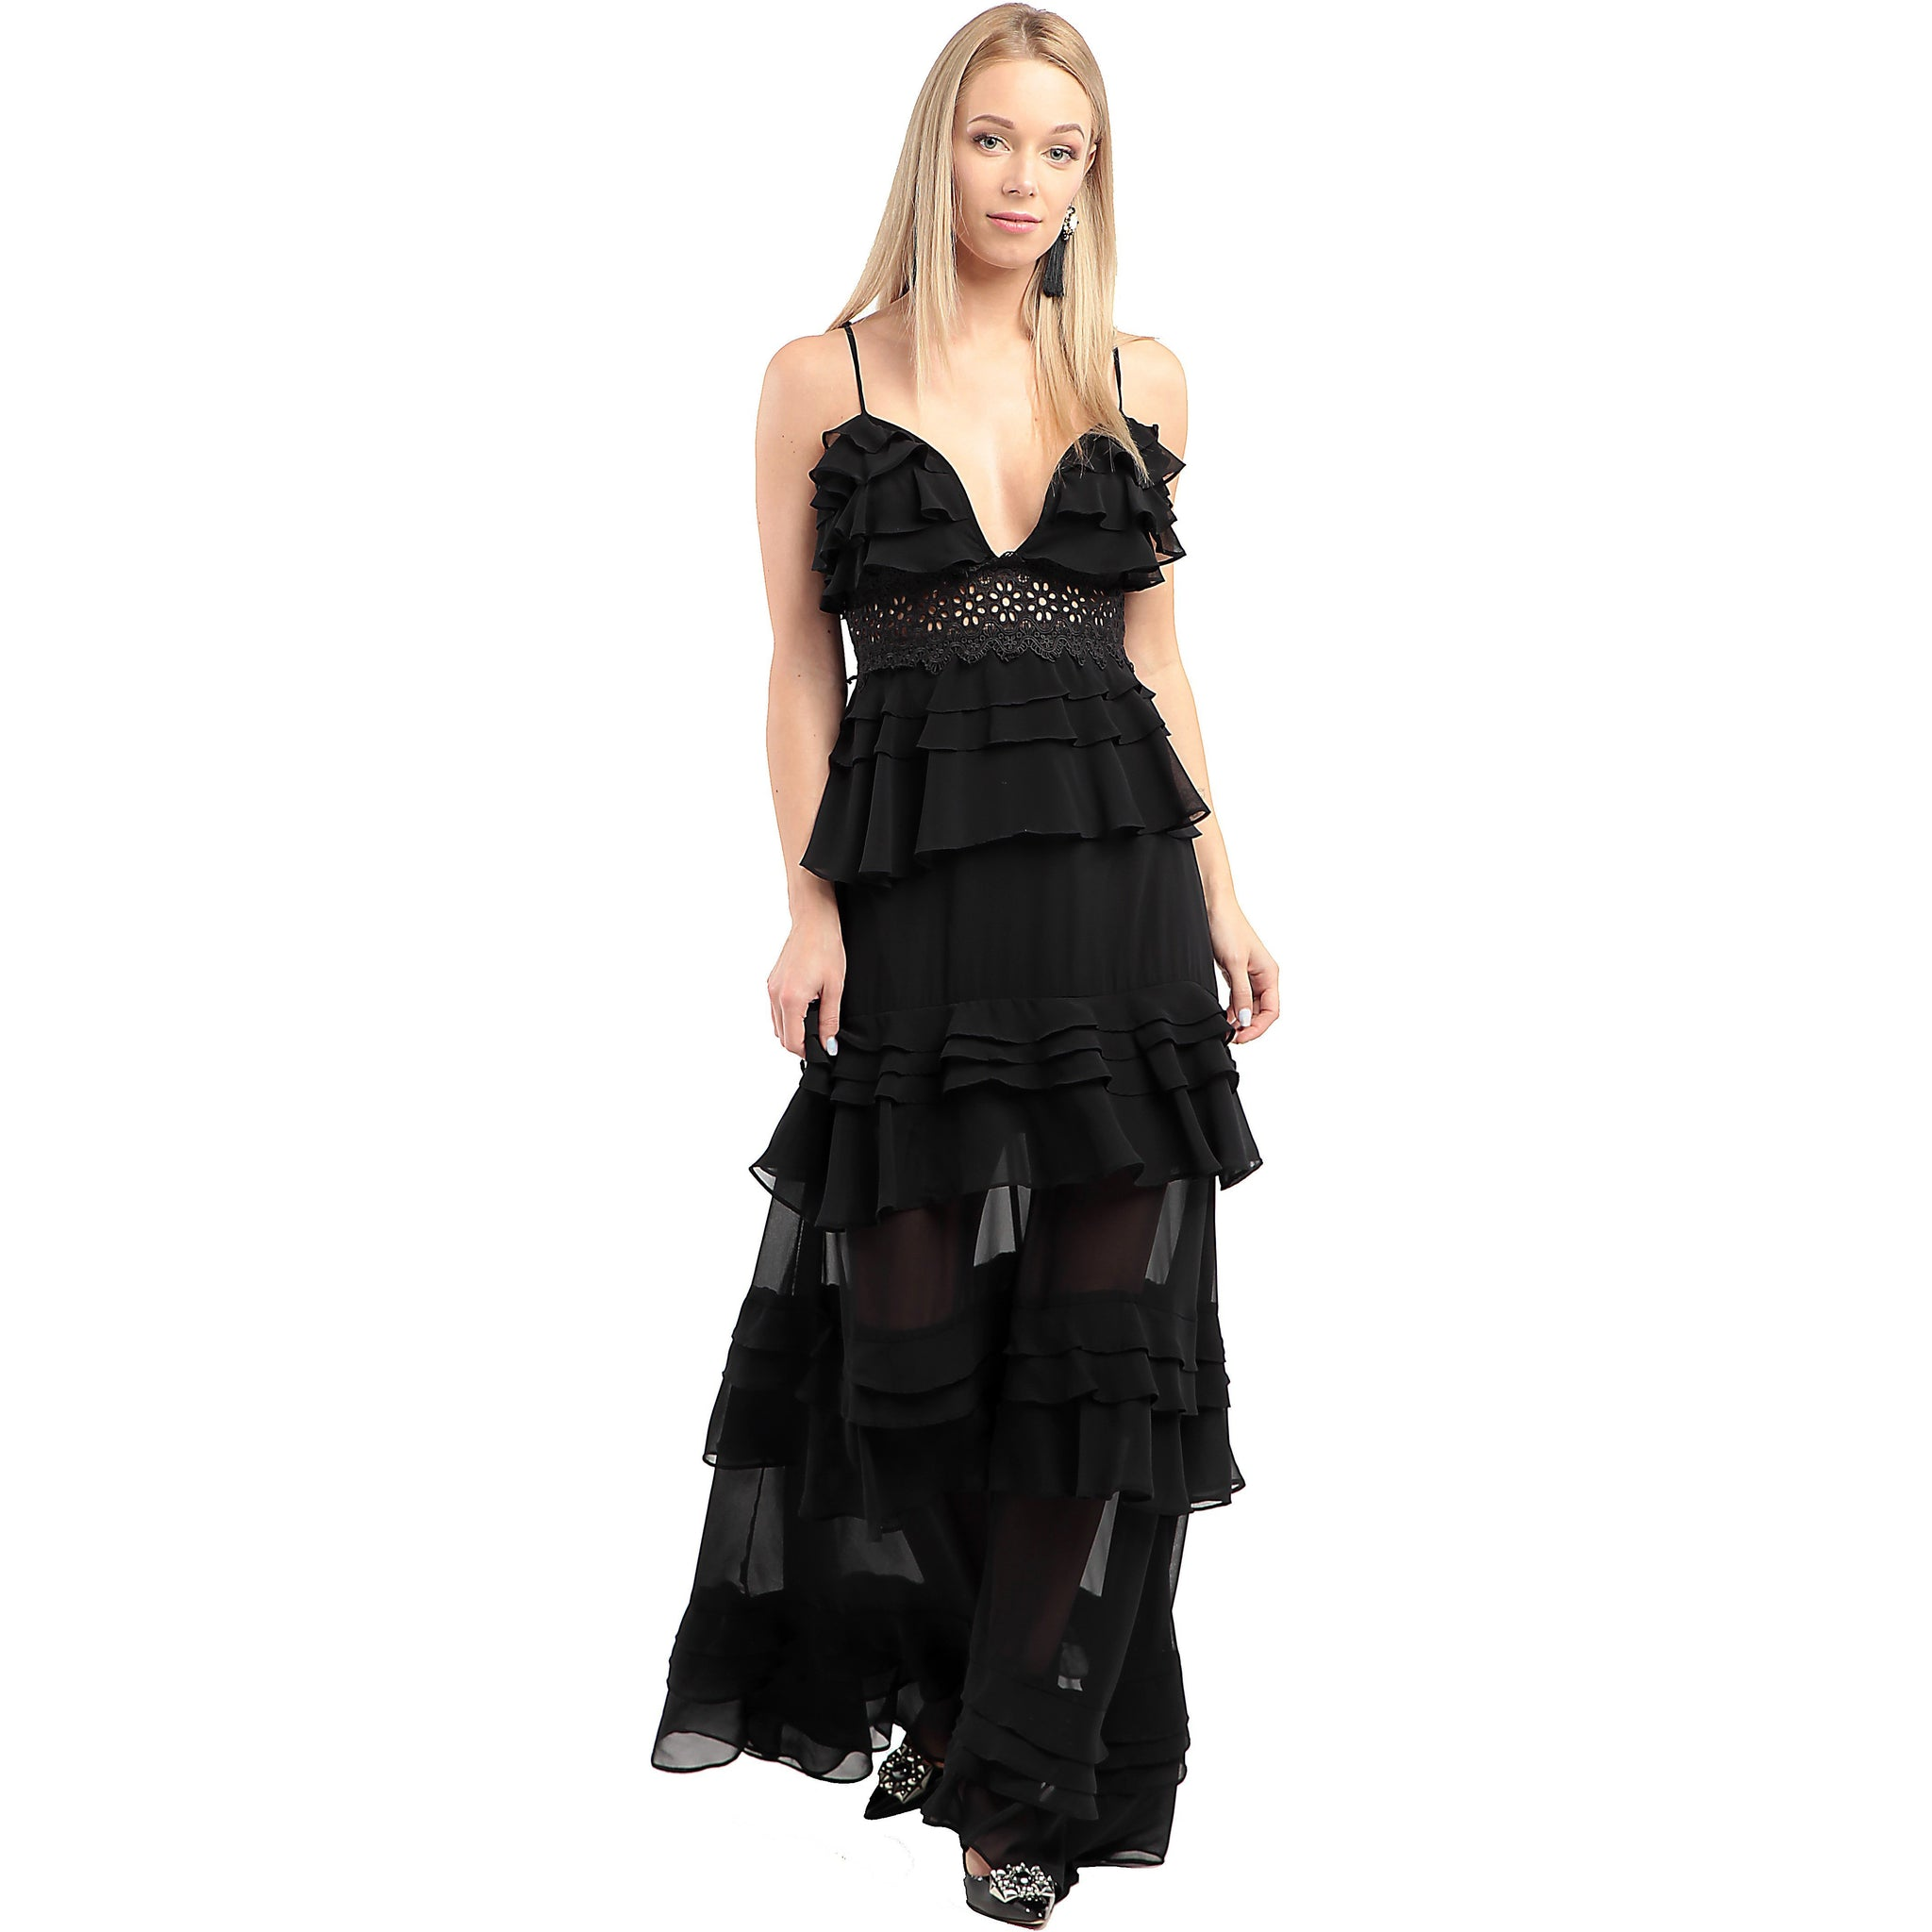 TRUE DECADENCE Glamorous Tiered Dress